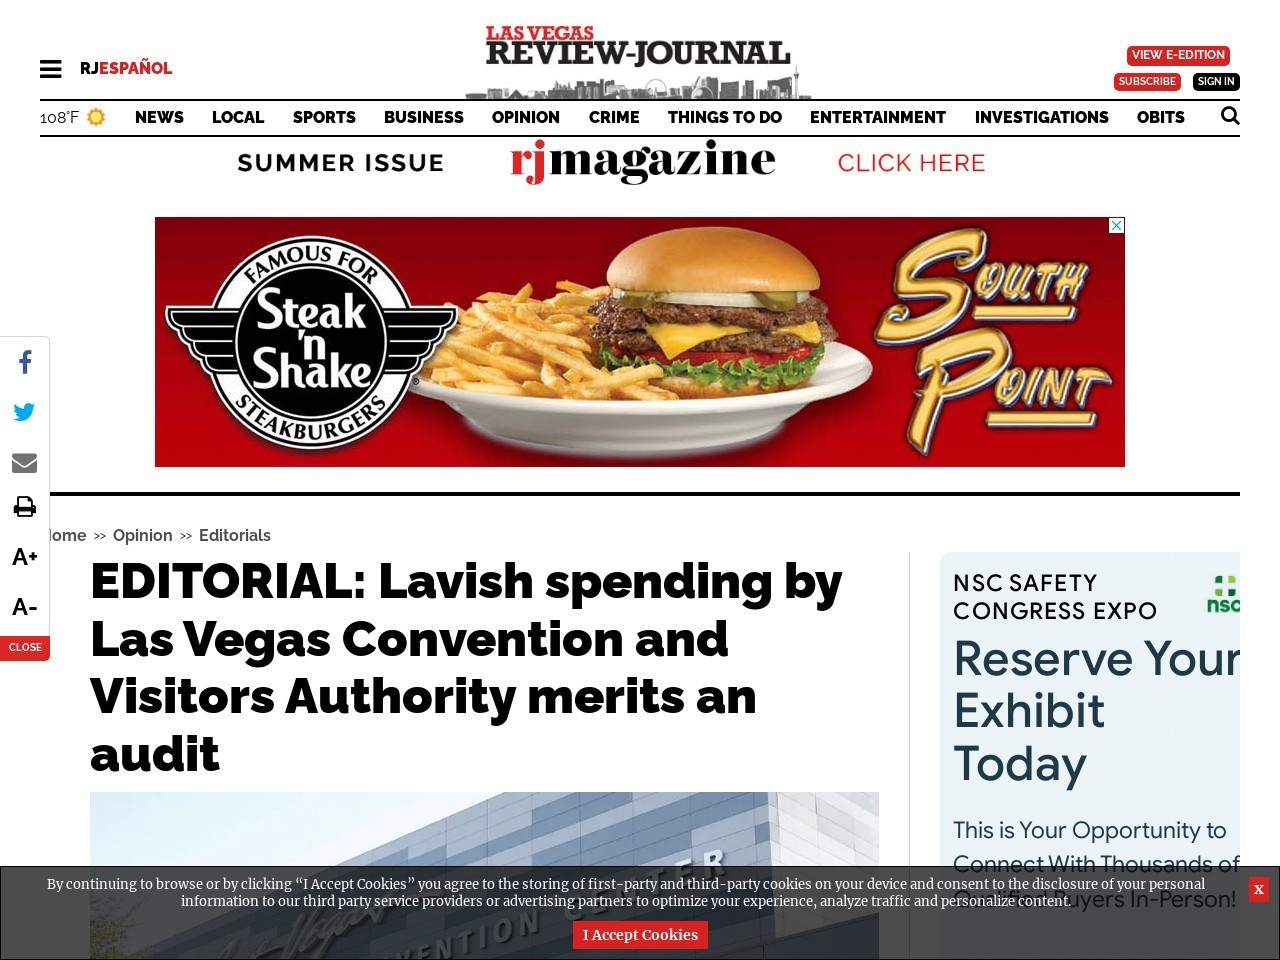 EDITORIAL: Lavish spending by Las Vegas Convention and Visitors Authority merits an audit